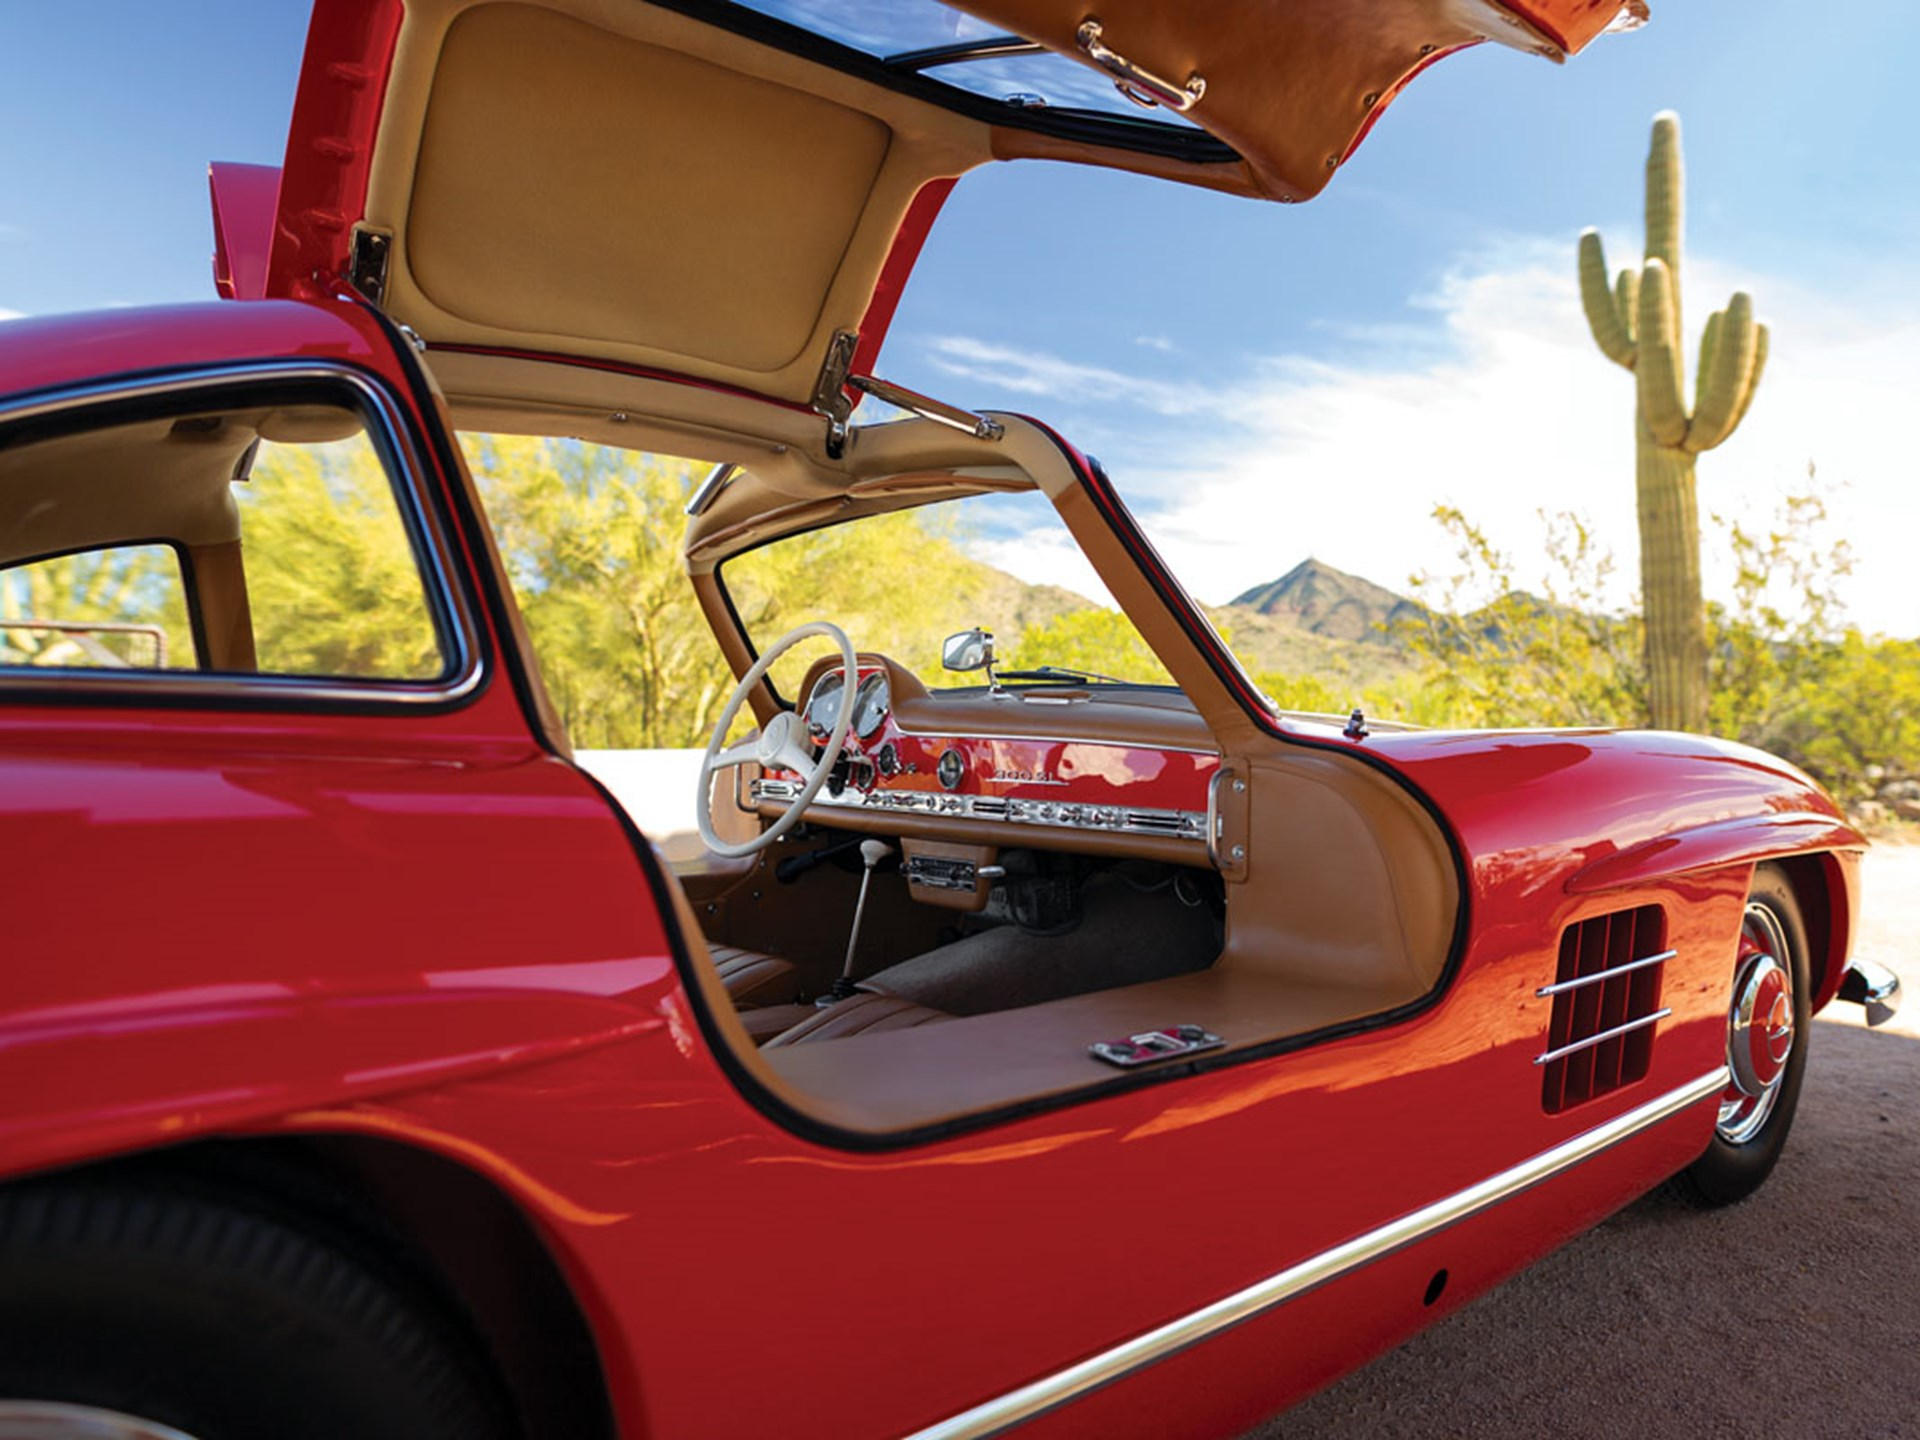 1955 Mercedes-Benz 300 SL Gullwing